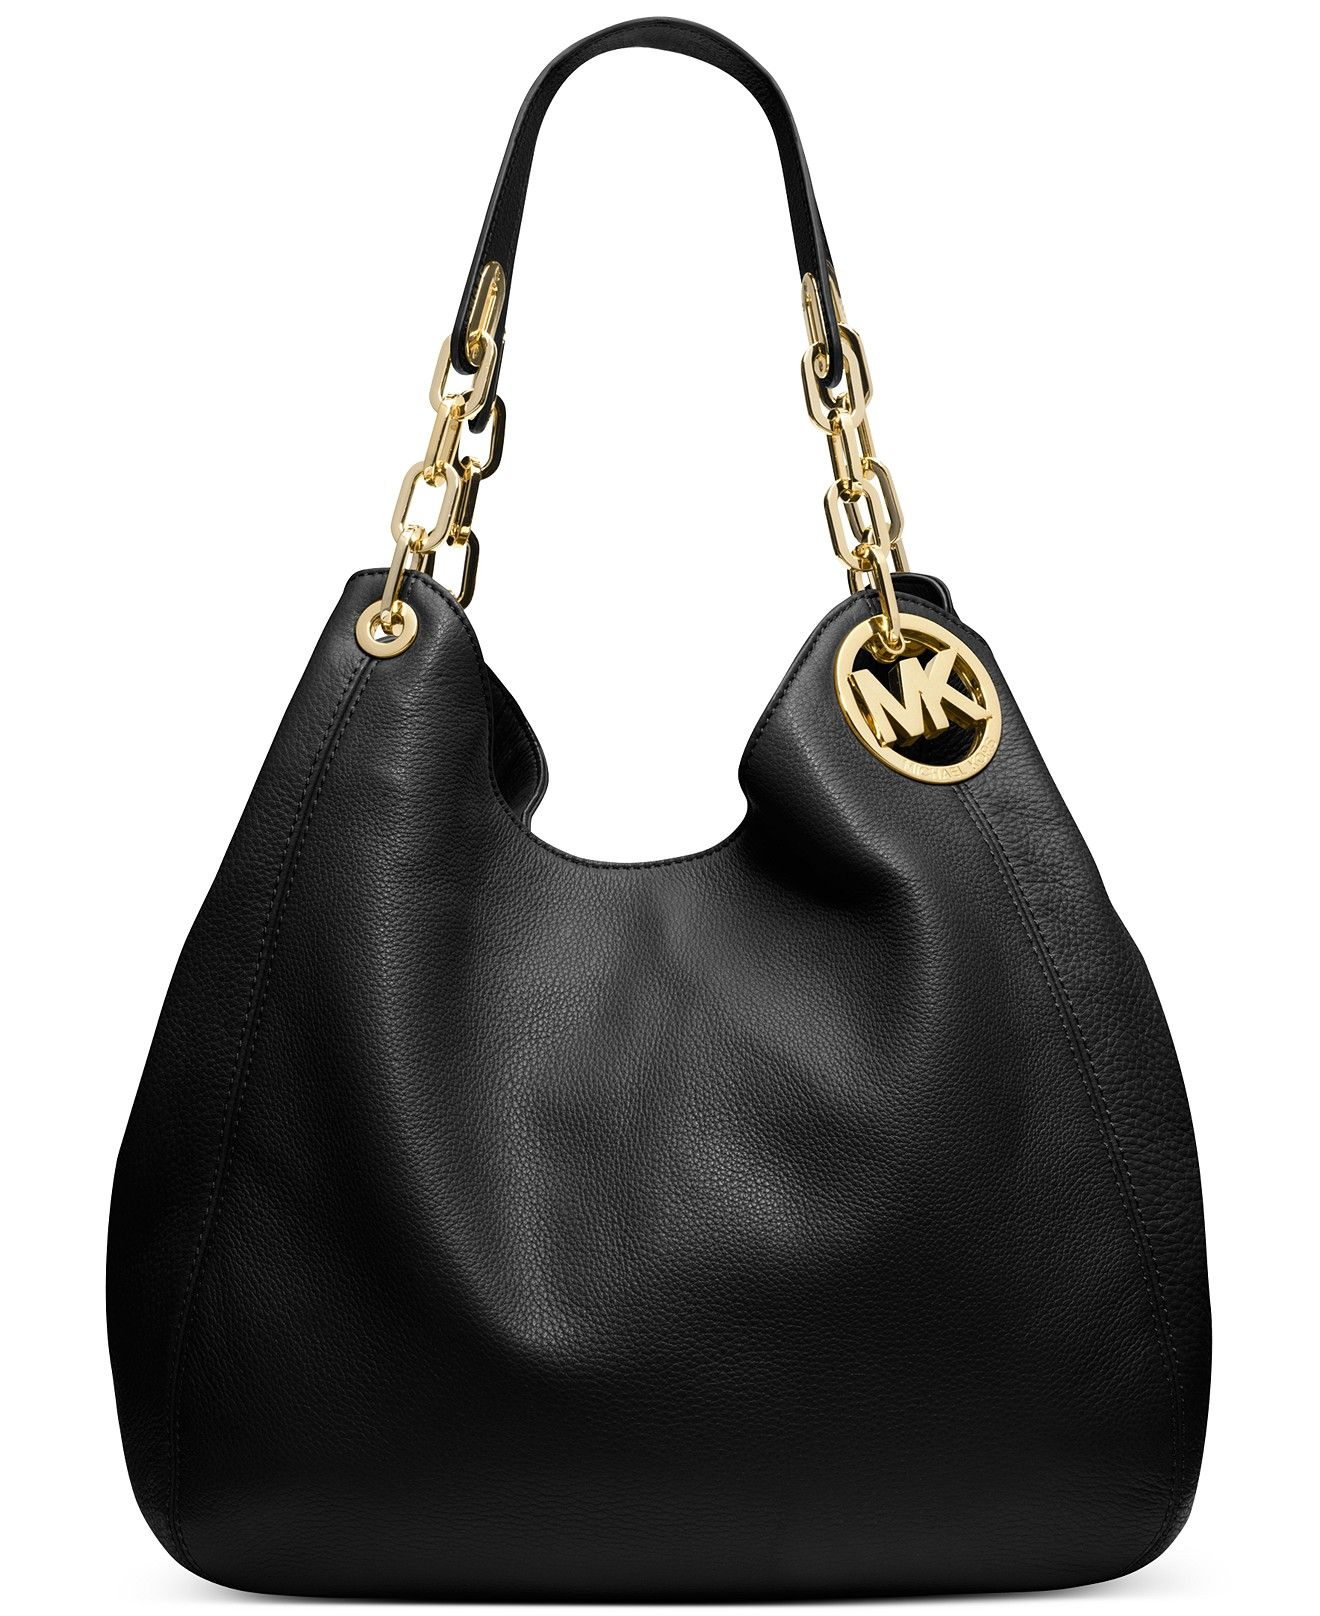 michael michael kors fulton large shoulder bag michael kors outlet online shopping and online. Black Bedroom Furniture Sets. Home Design Ideas